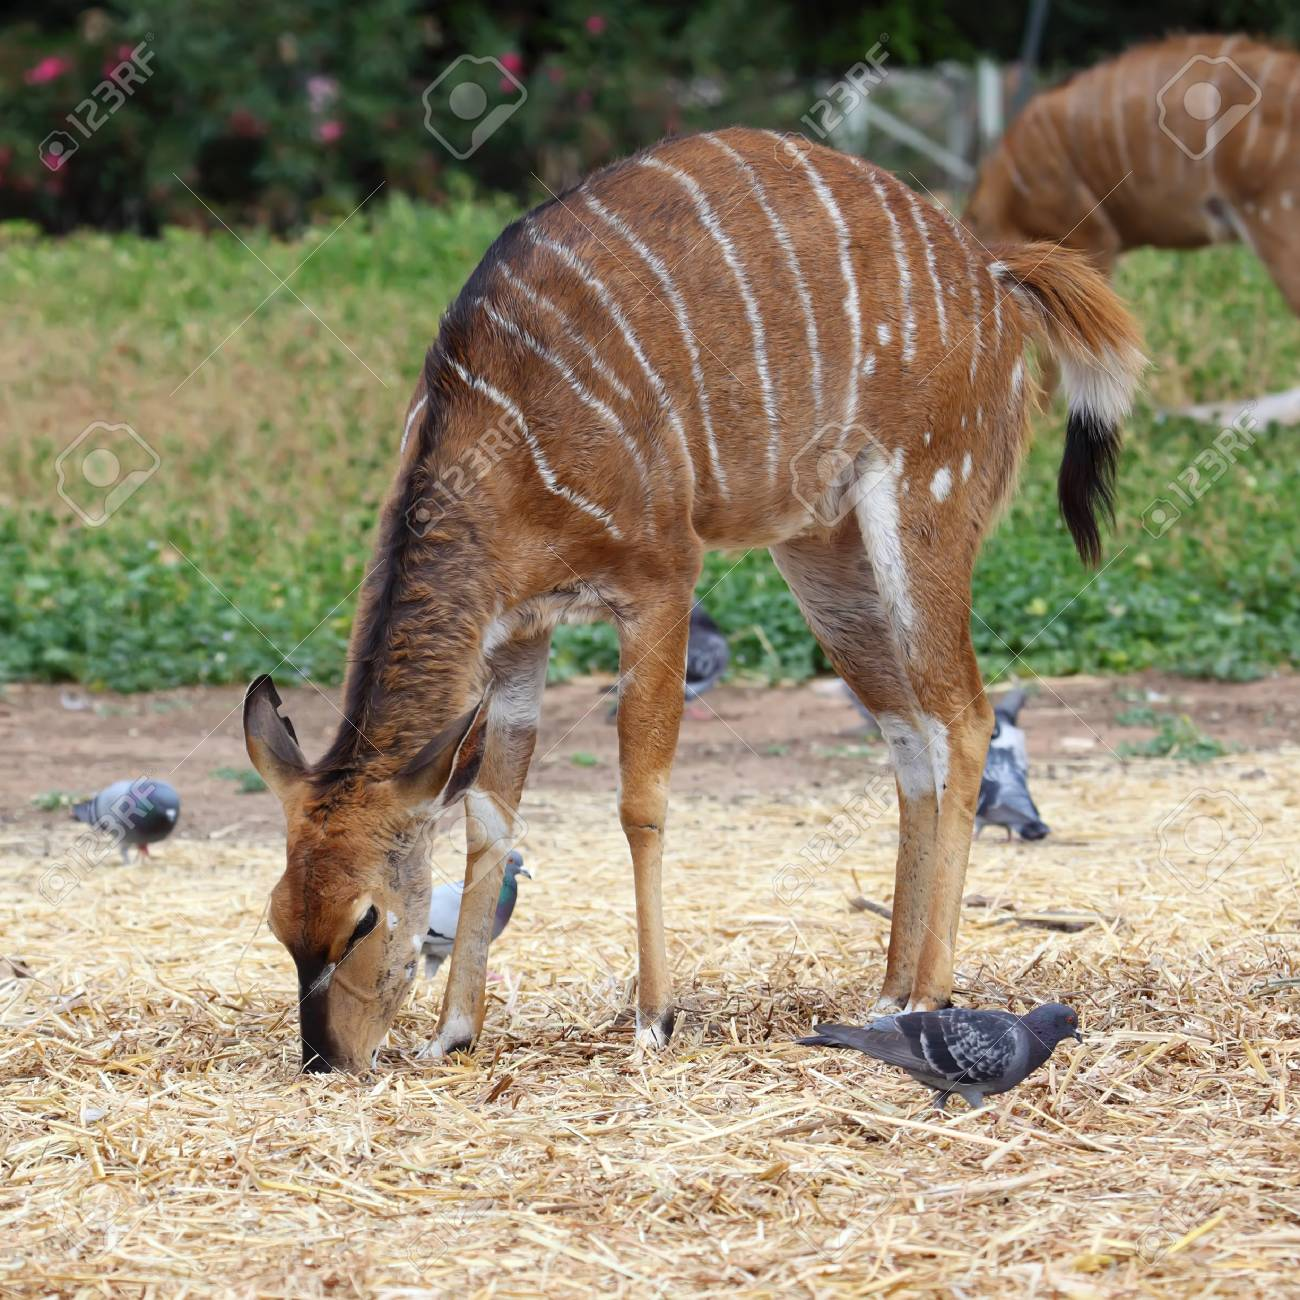 Kudu  Tragelaphus Strepsiceros  standing in the nature reserve in Israel Stock Photo - 15683958